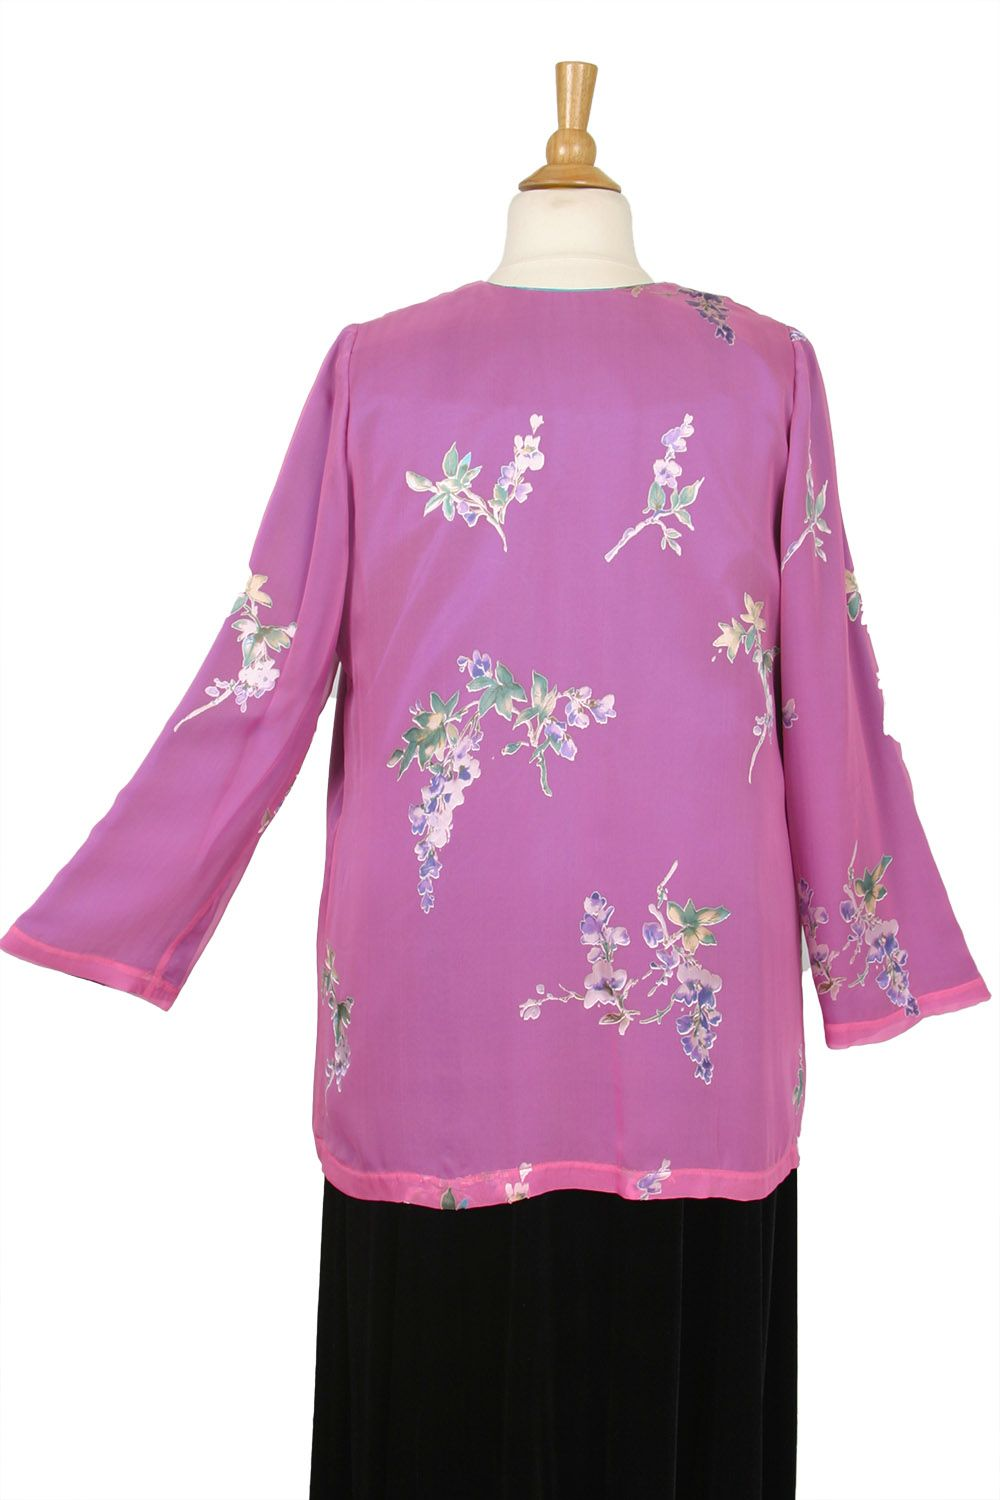 927553e073d Plus Size Mother of Bride Jacket Floral Silk Devore Pink SHOP NOW  Unique  jackets for women Sizes 14 - 36